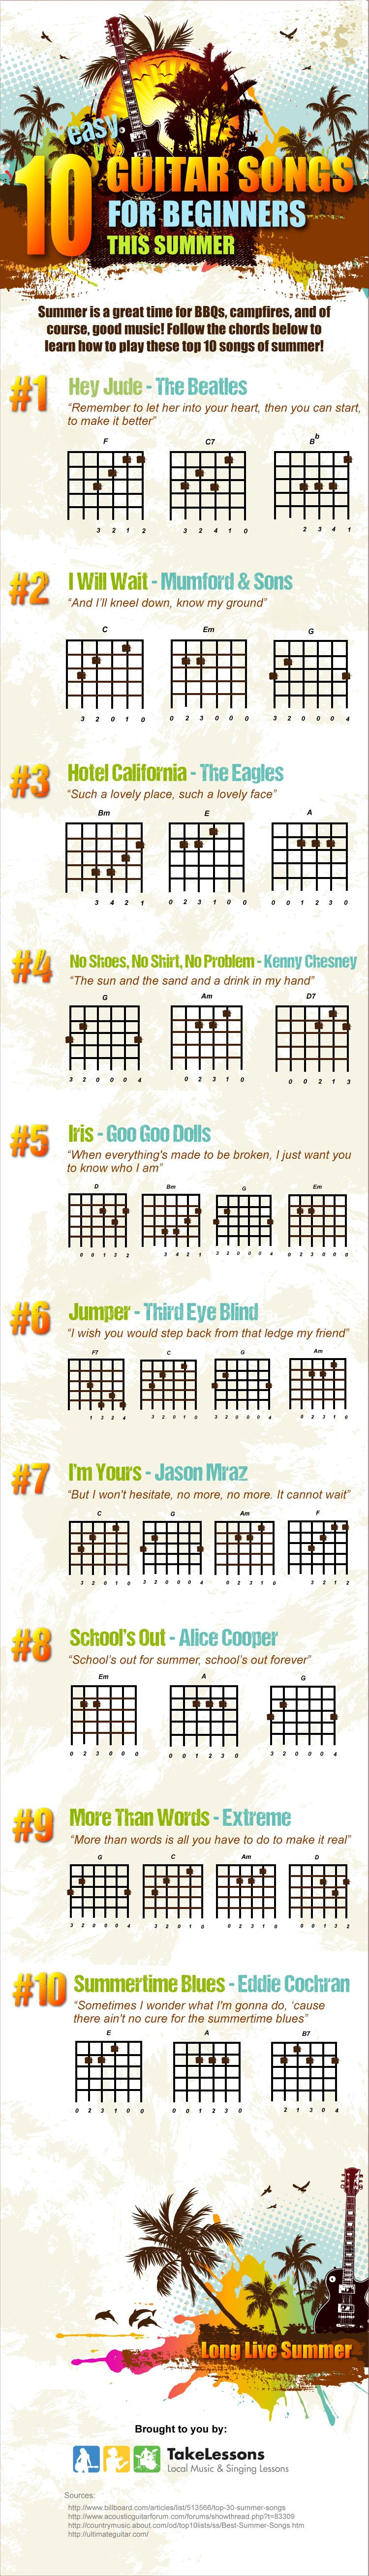 10 easy guitar songs for beginners this summer not left handed 10 easy guitar songs for beginners this summer not left handed though hexwebz Image collections